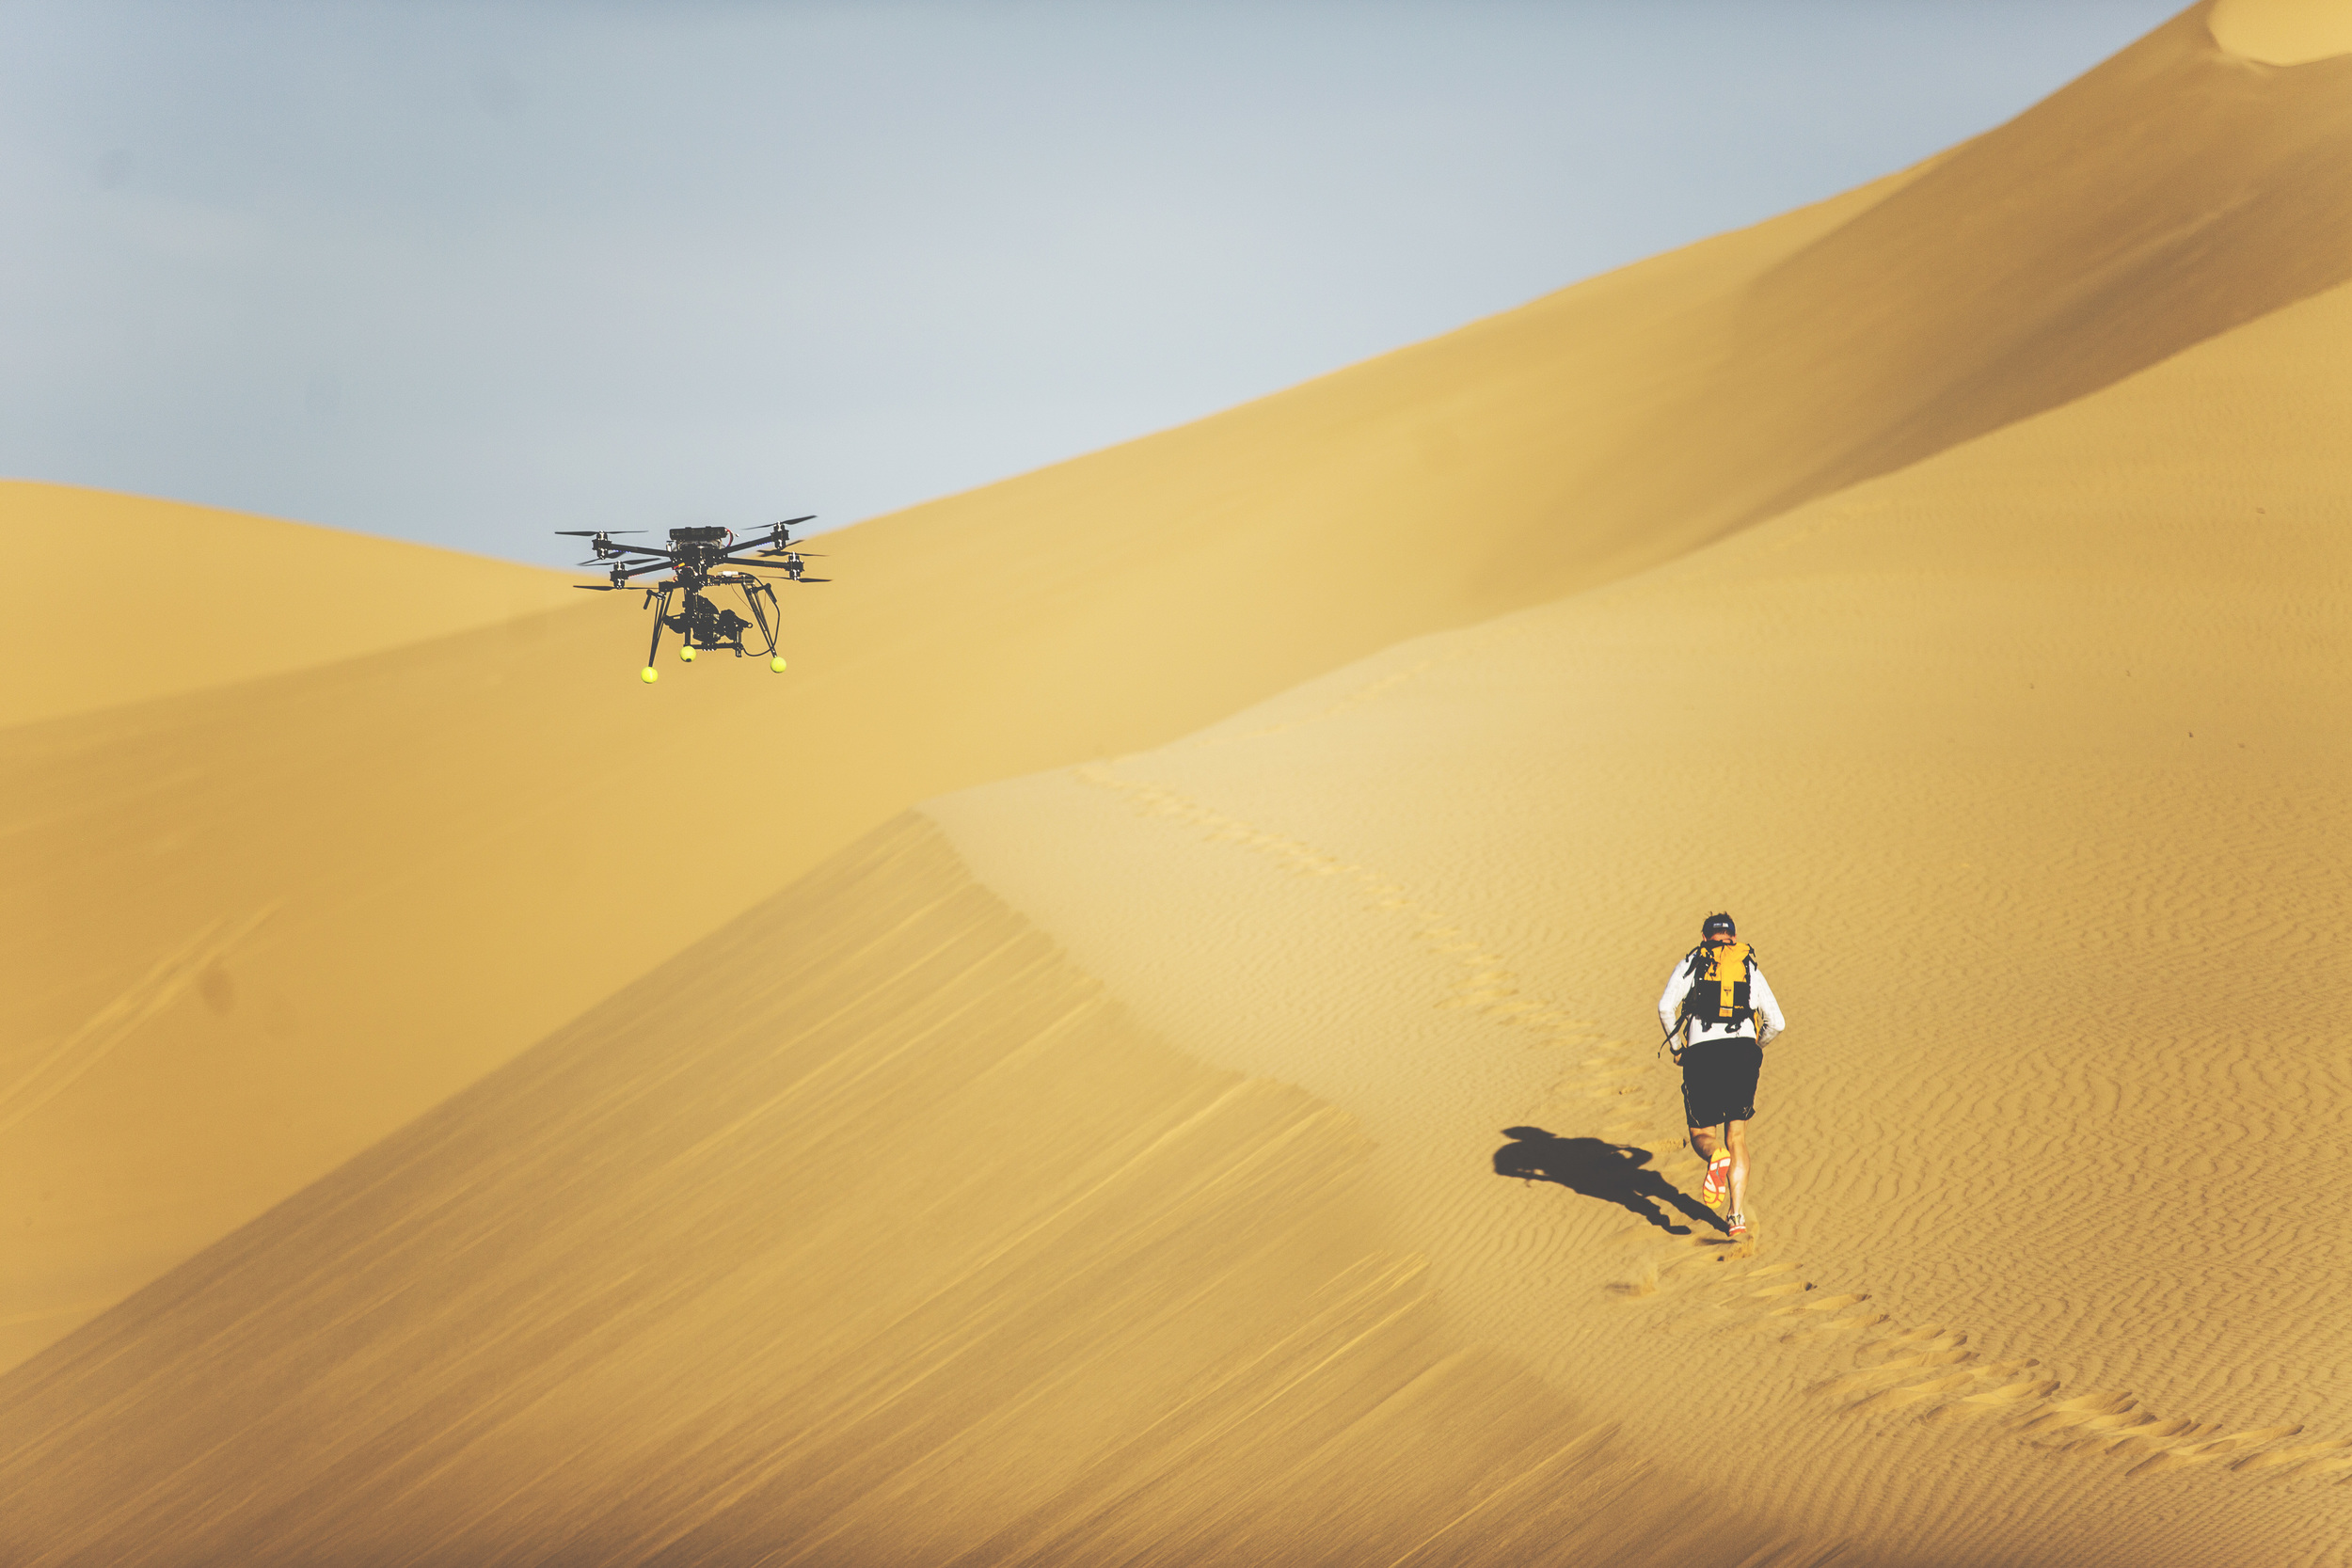 Flying our Cinestar X8 through the desert